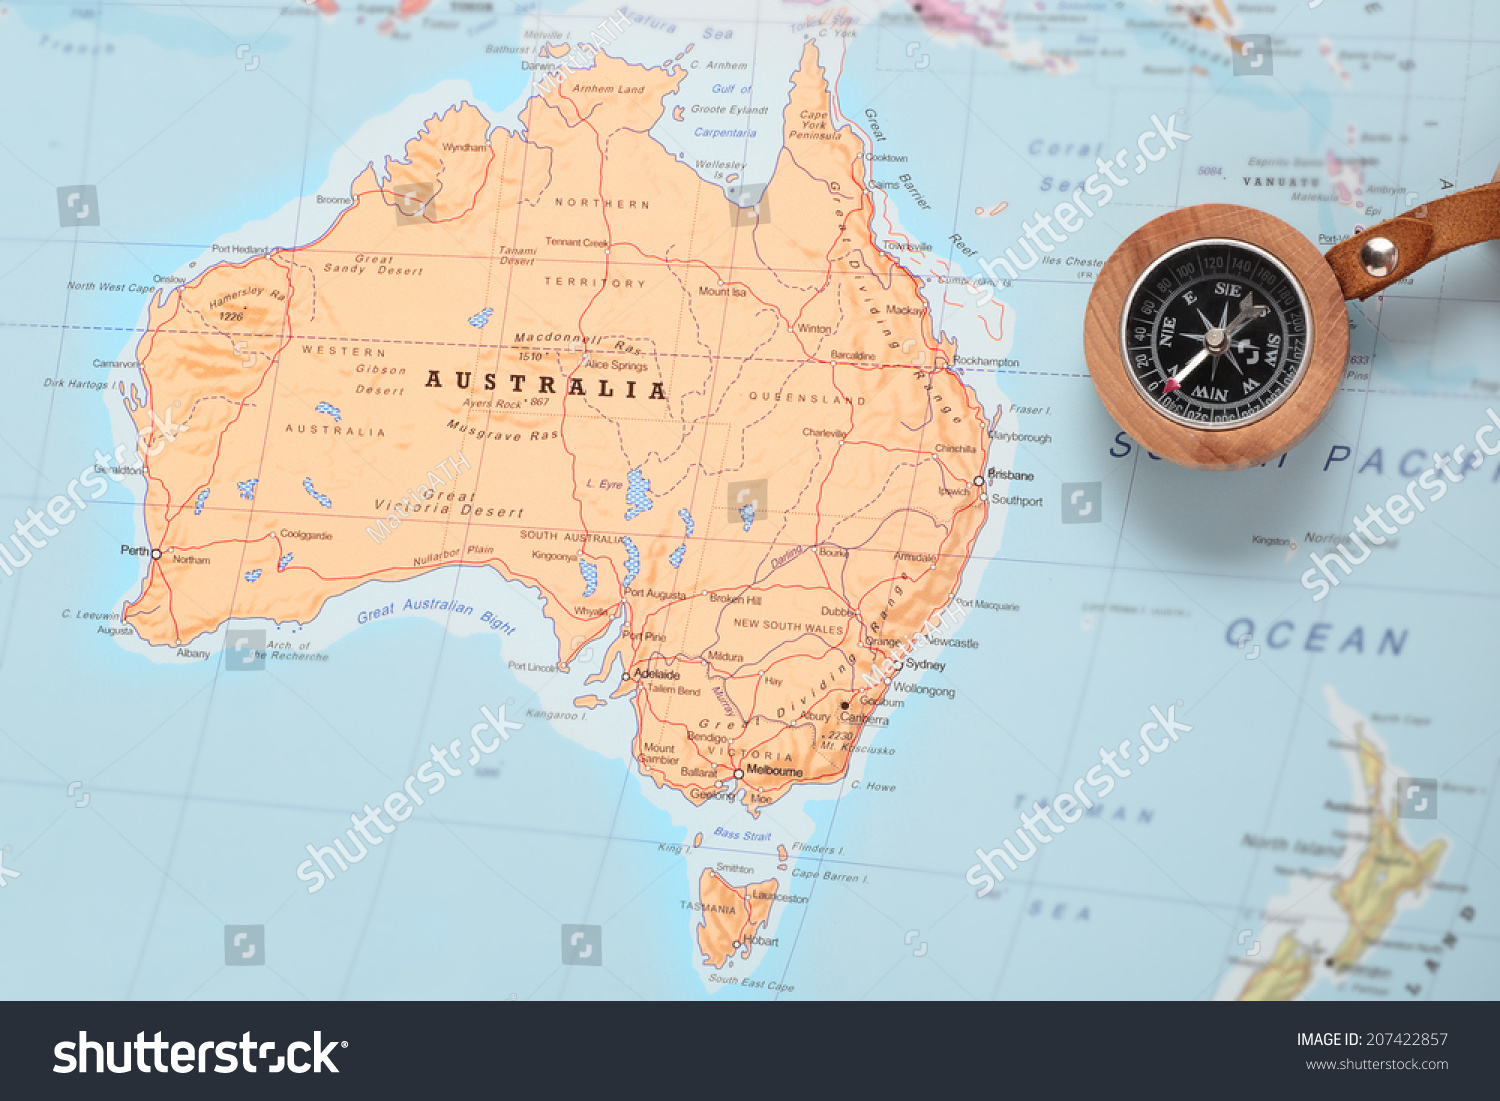 Compass On Map Pointing Australia Planning Stock Photo - Us map with compass